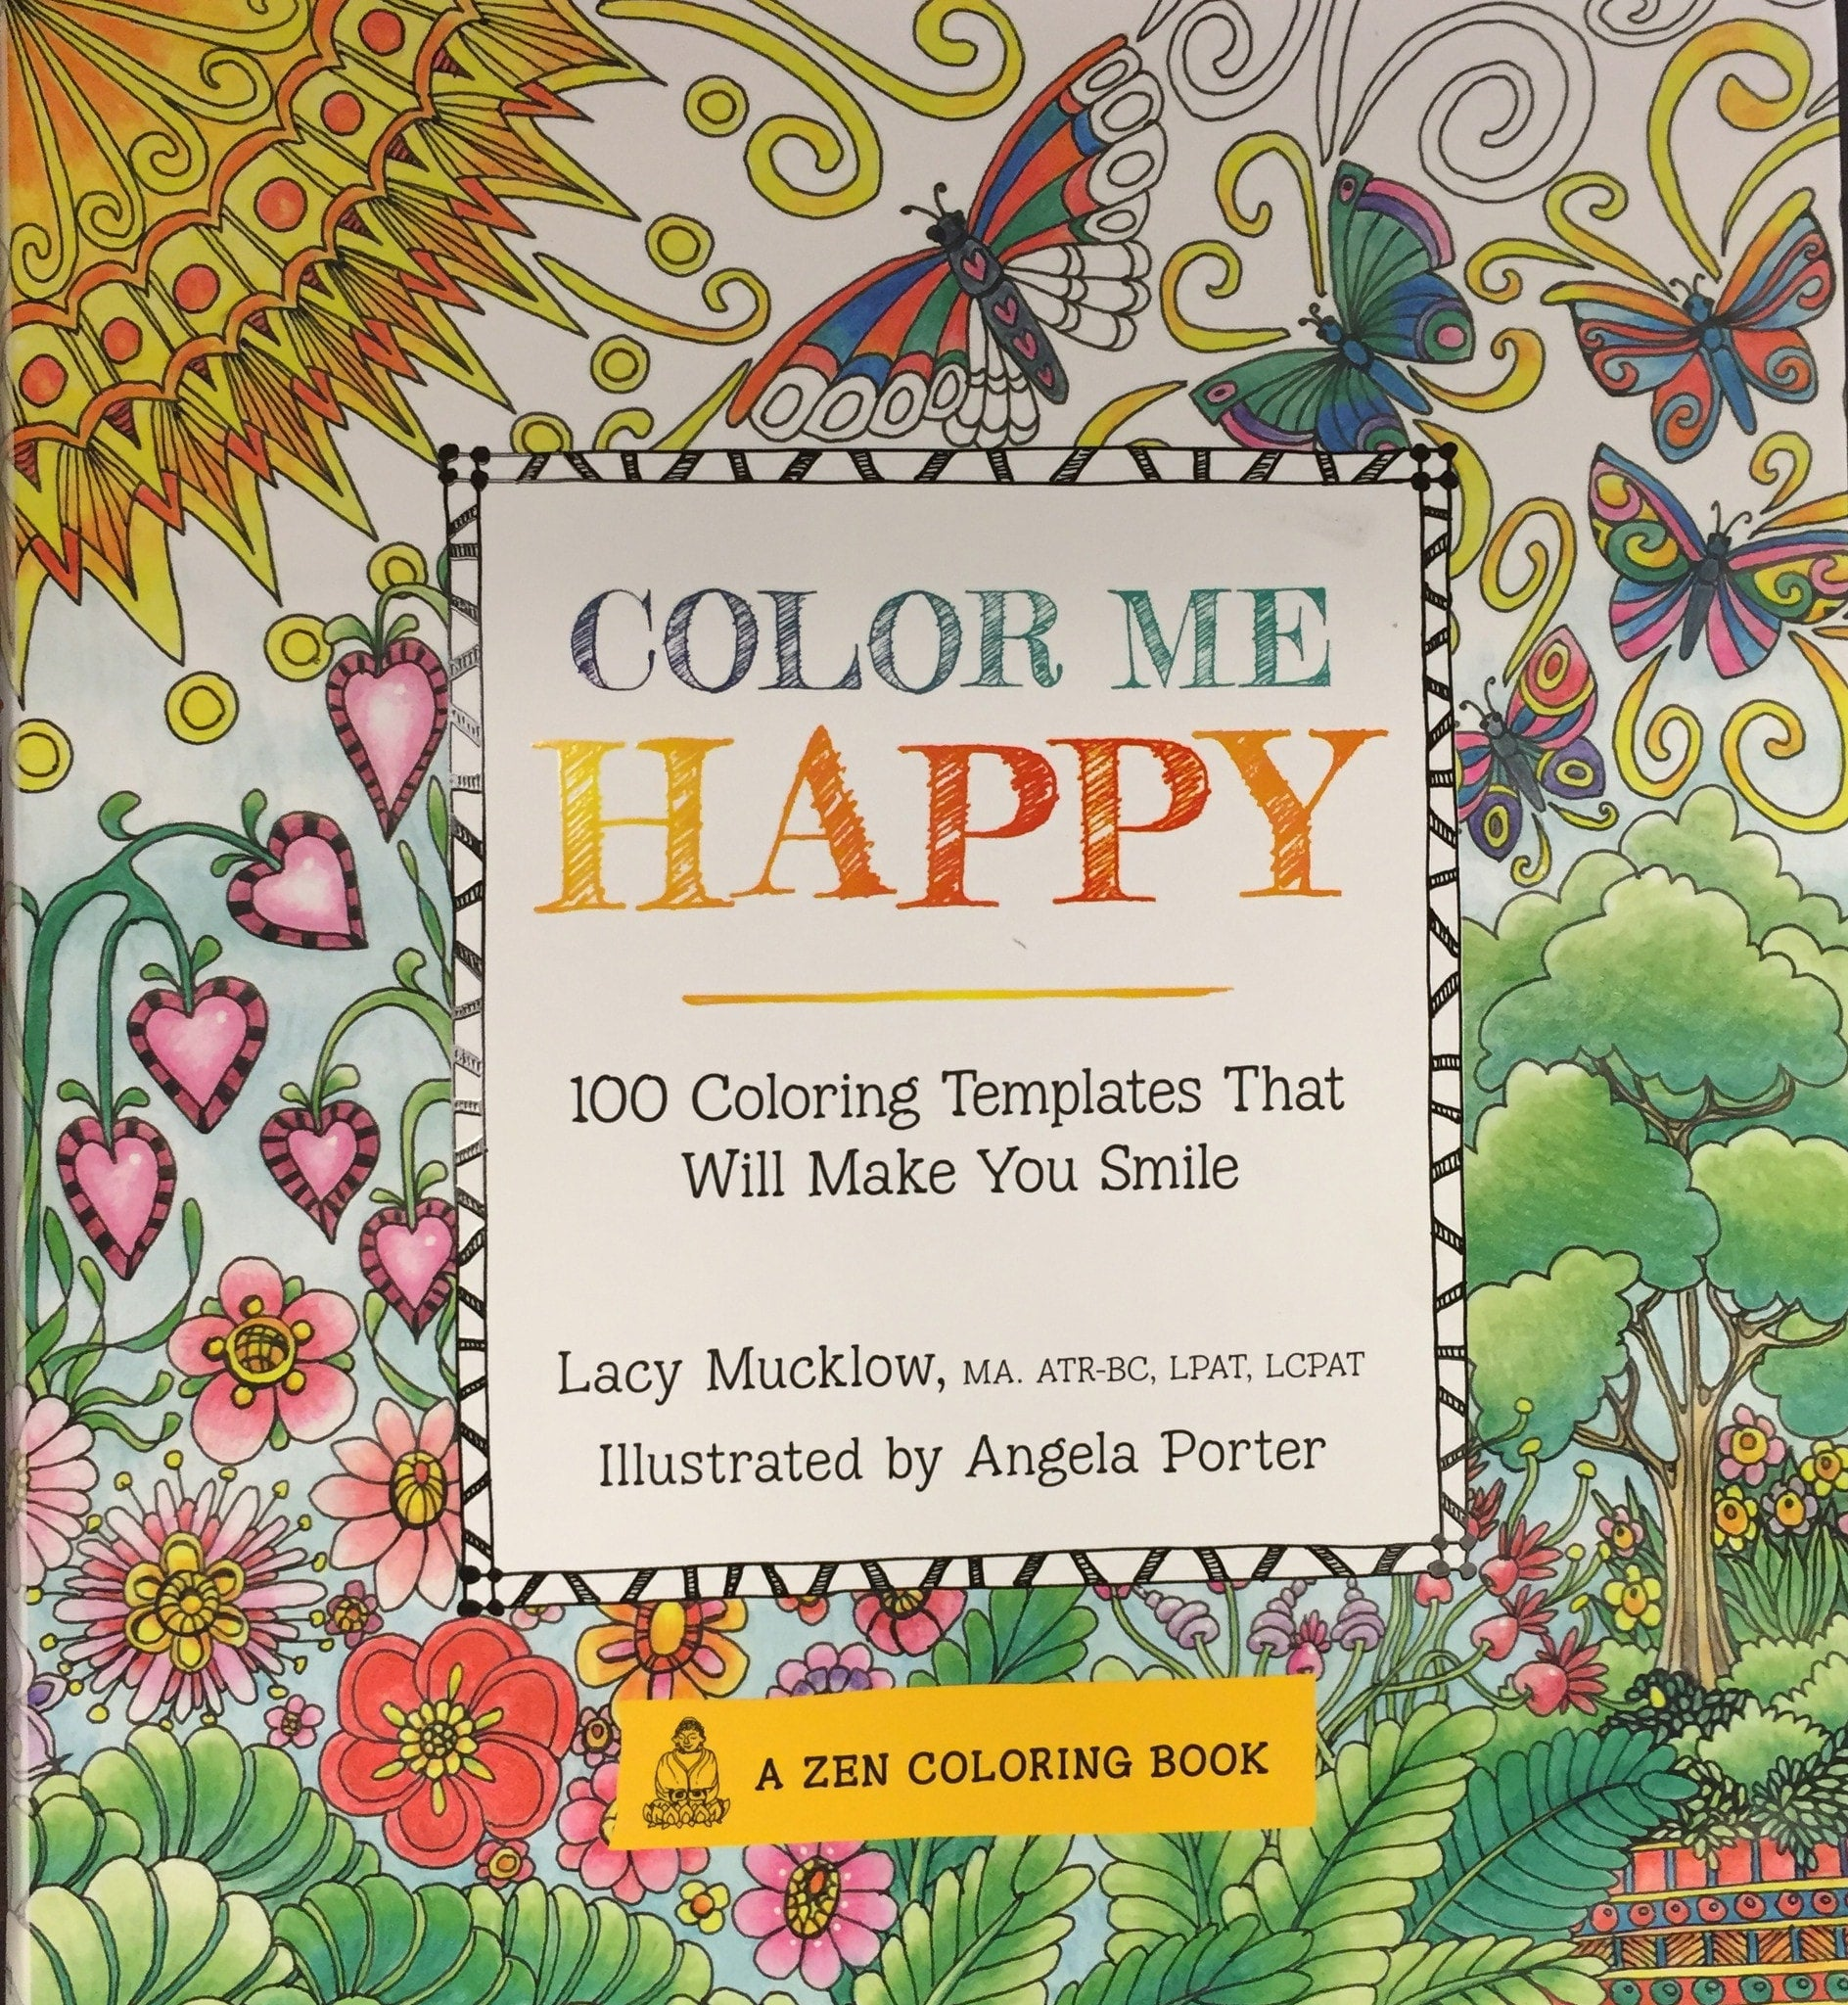 color me happy 100 coloring templates that will make you smile coloring book zone - Best Coloring Book